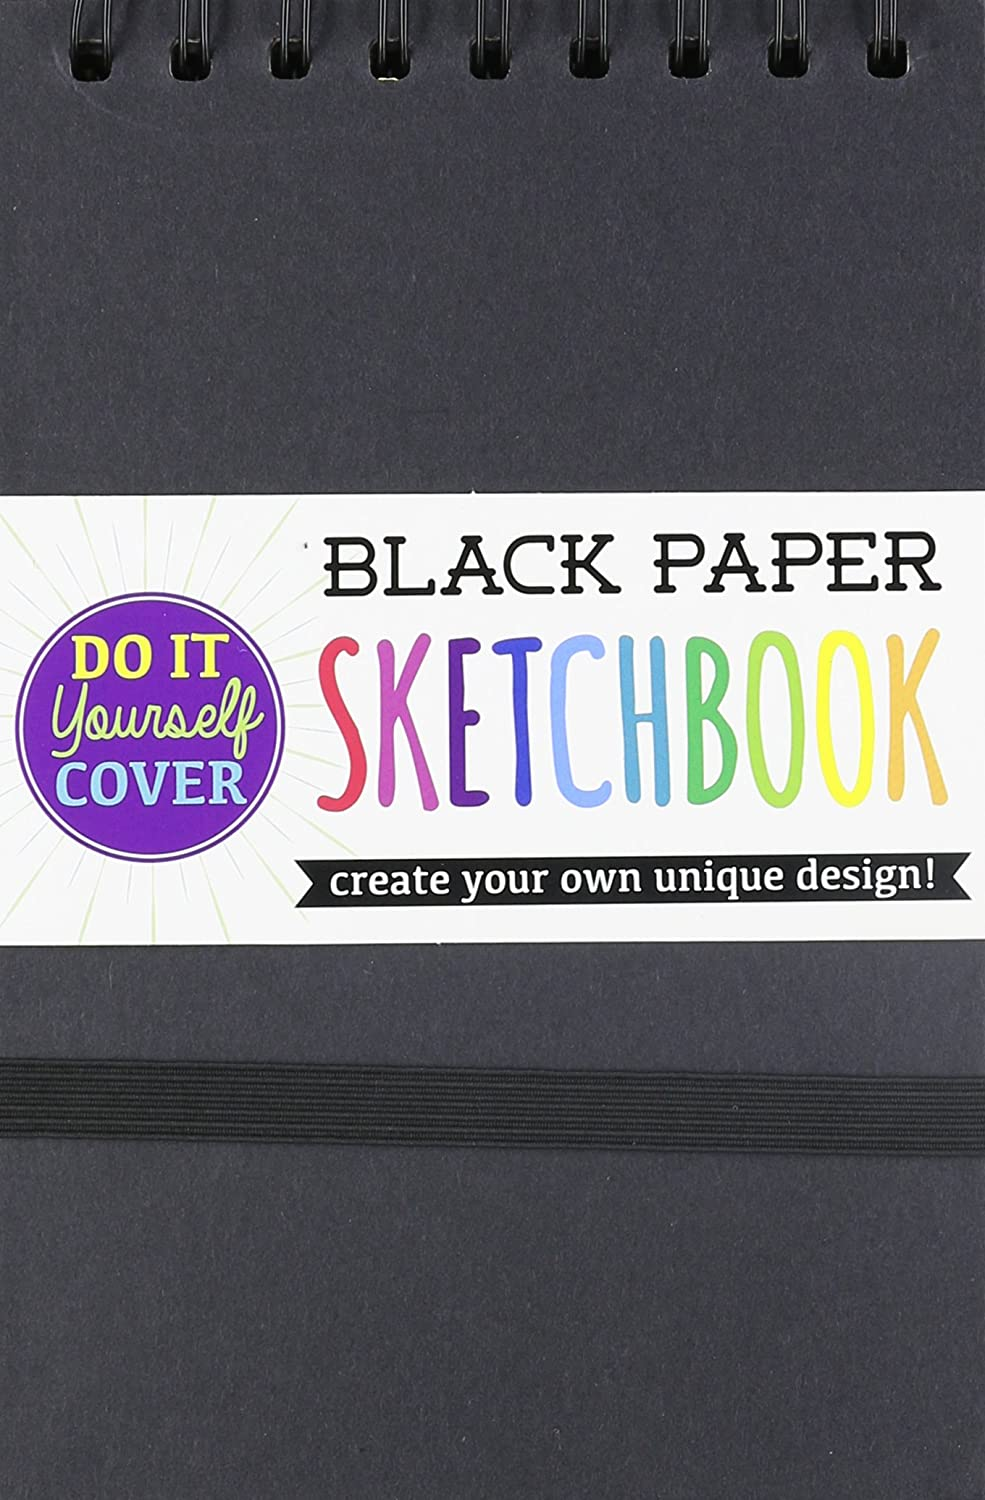 "OOLY, DIY Cover Sketchbook - Small Black Paper 5""x 7.5"" (118-102)"